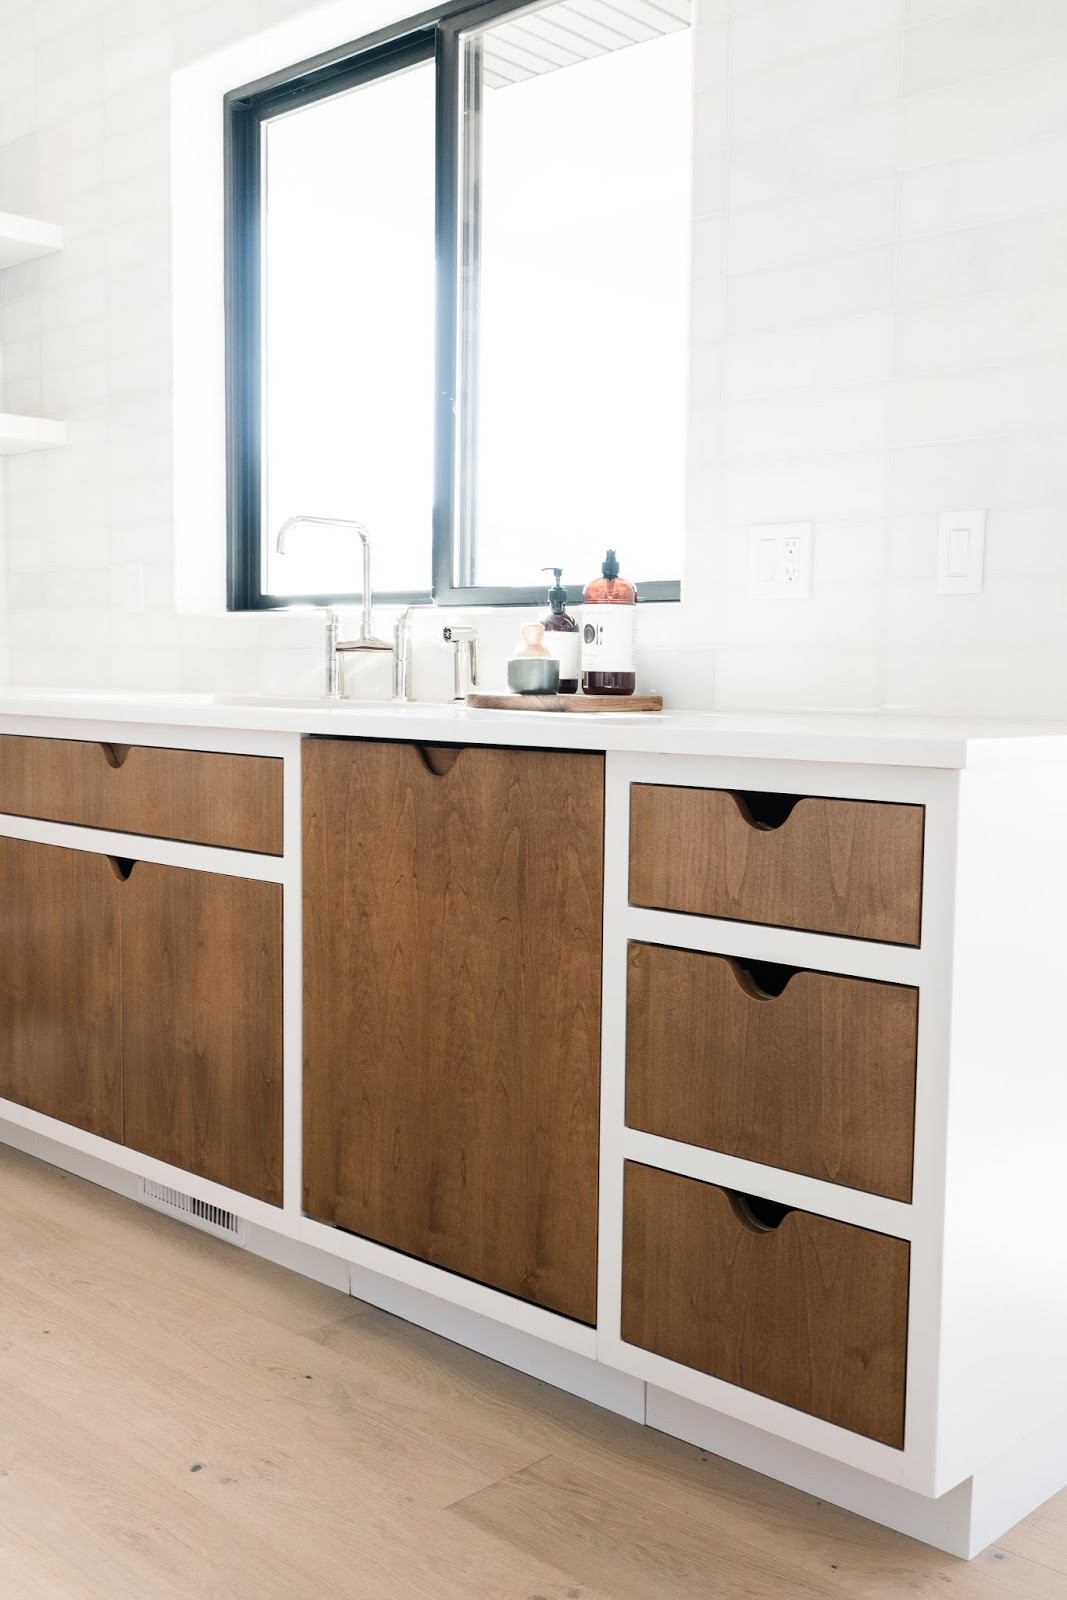 Wood Kitchen Details, Modern Butlers Pantry